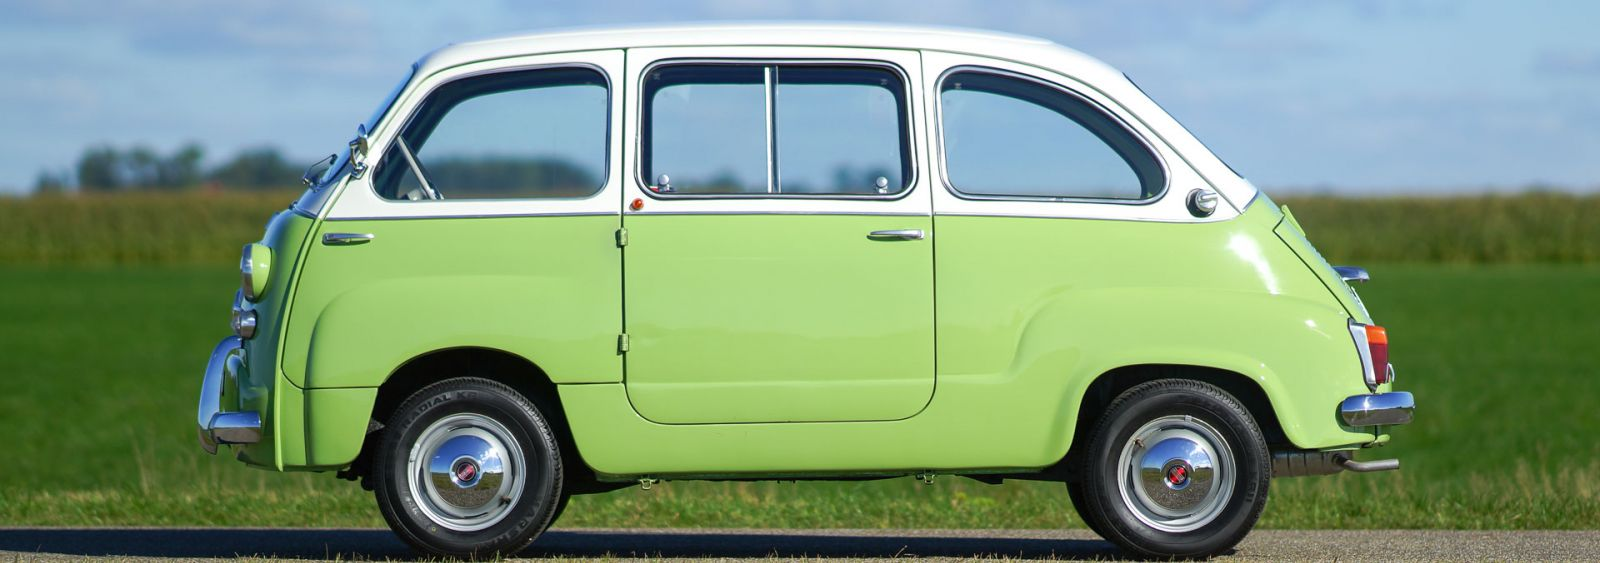 Fiat 600 multipla 1963 classicargarage fr for Interieur fiat multipla